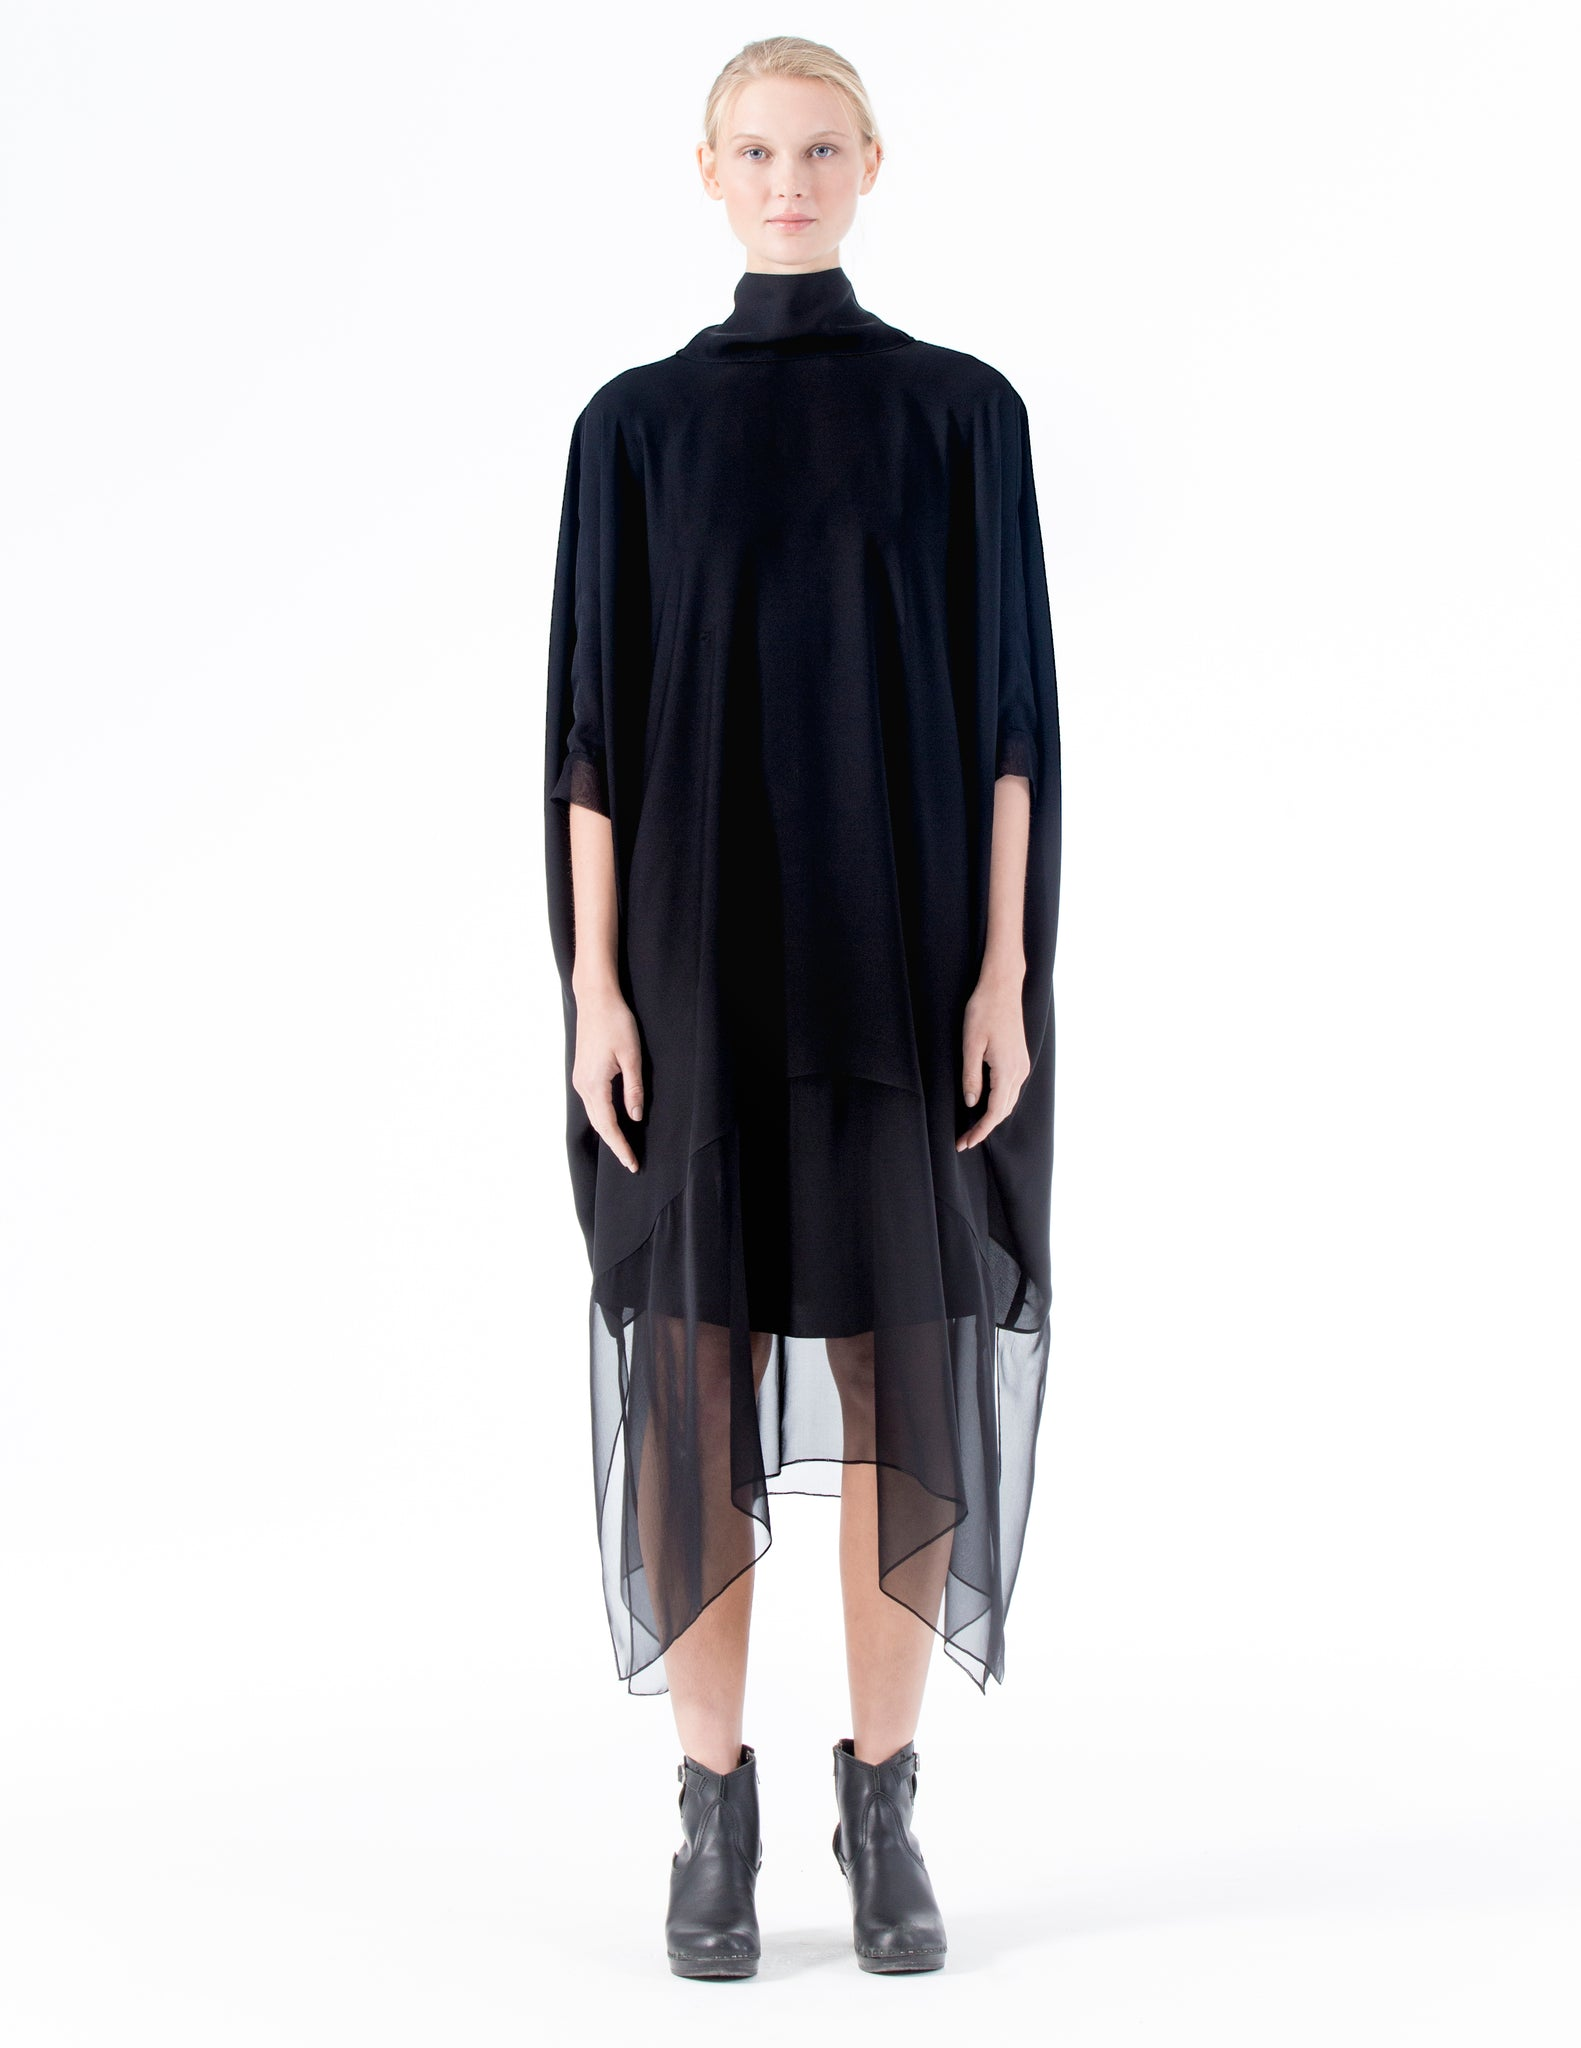 oversized double georgette dress with an open back, self-tie bow at the neck, and chiffon layered skirt. interior ties to create optional drapery. made in new york city.